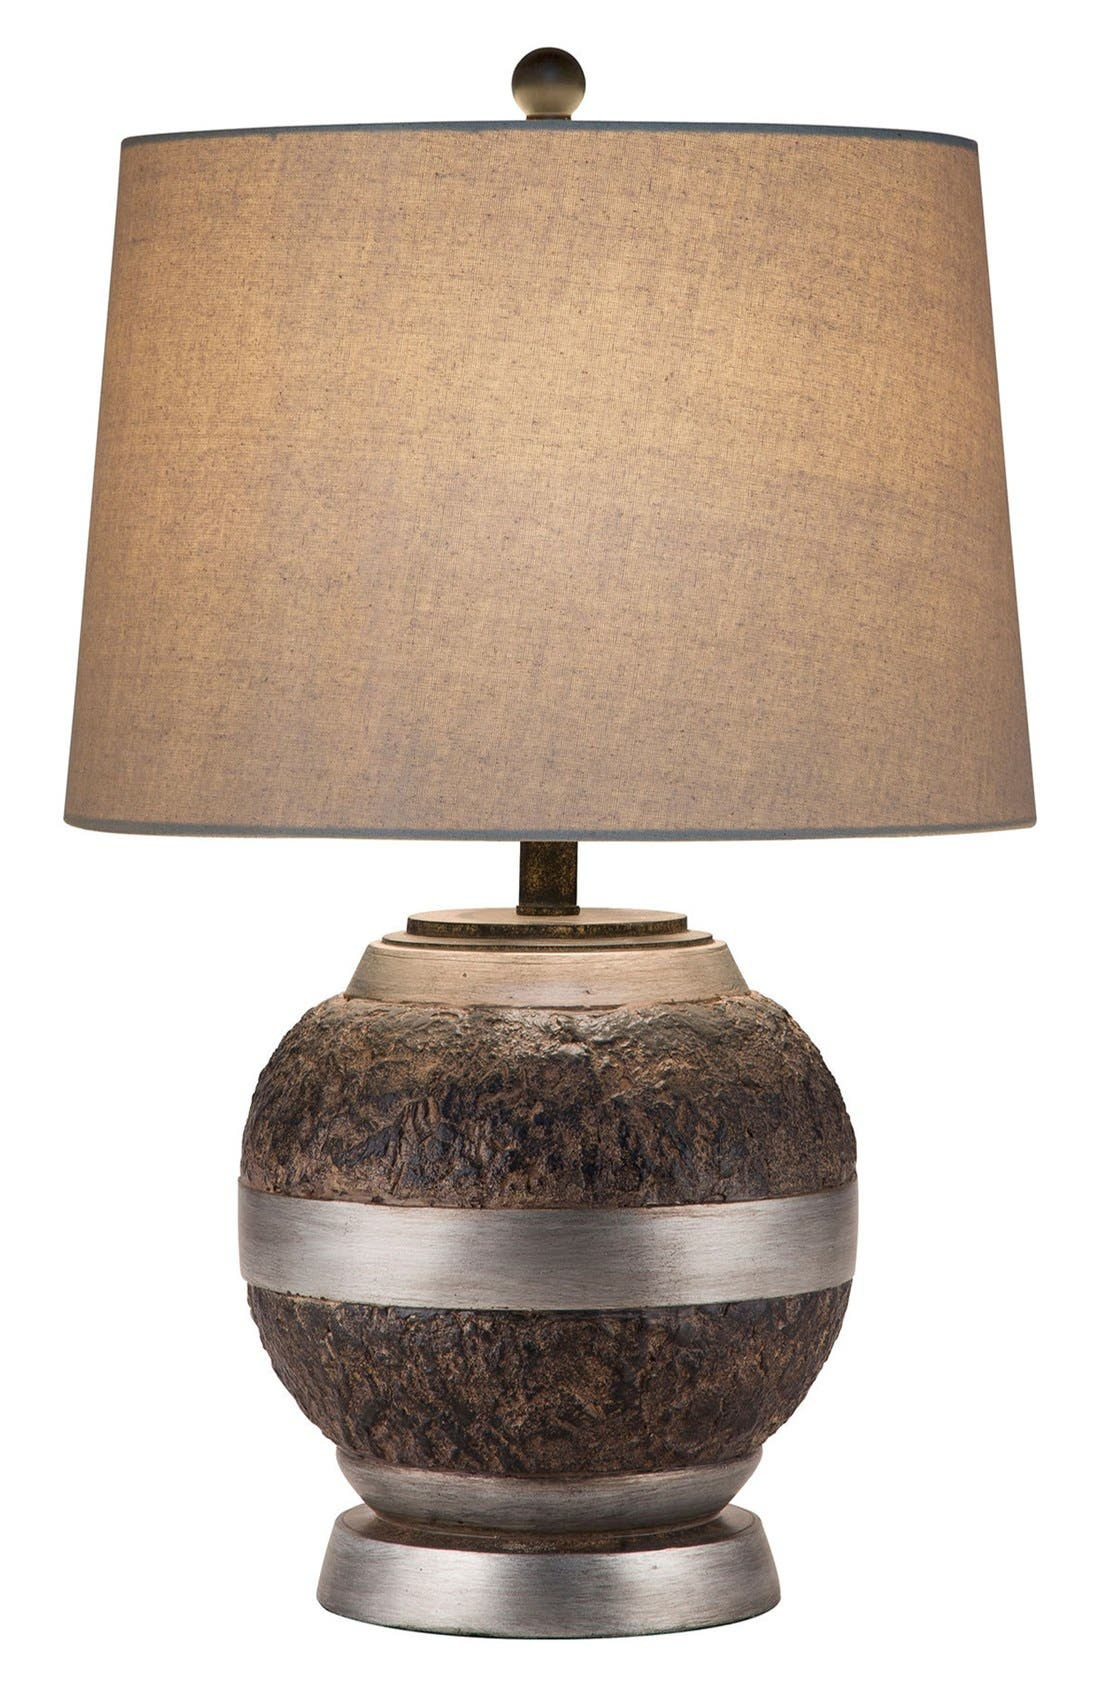 Alternate Image 1 Selected - JAlexander Textured Bronze Finish Table Lamp